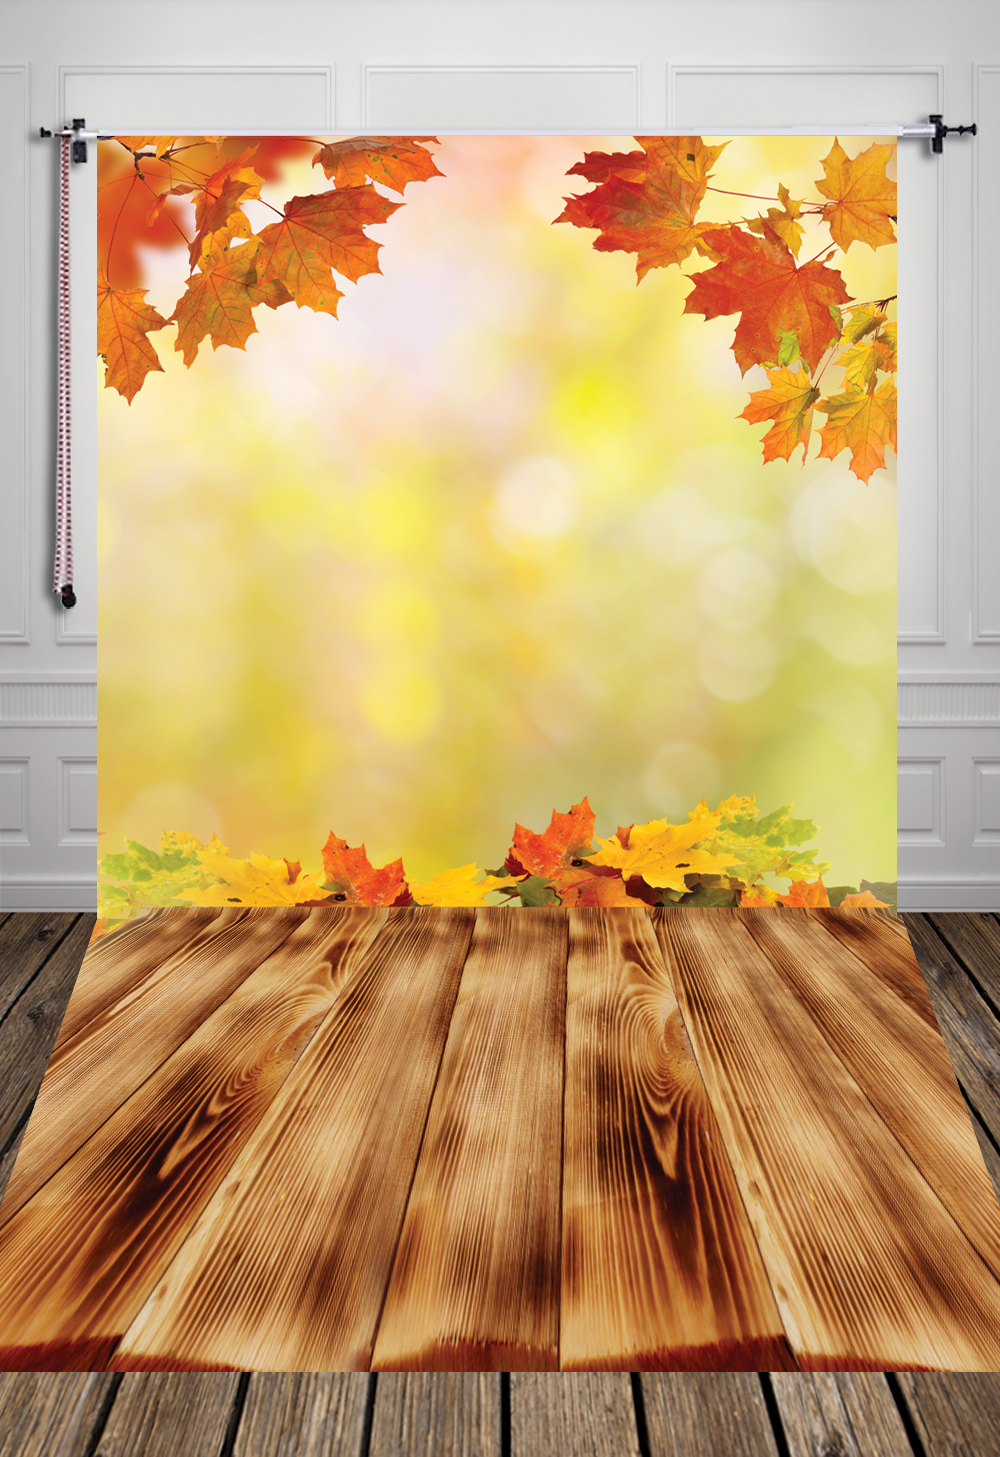 online shop 5x7ft autumn fall photography background scenery maple